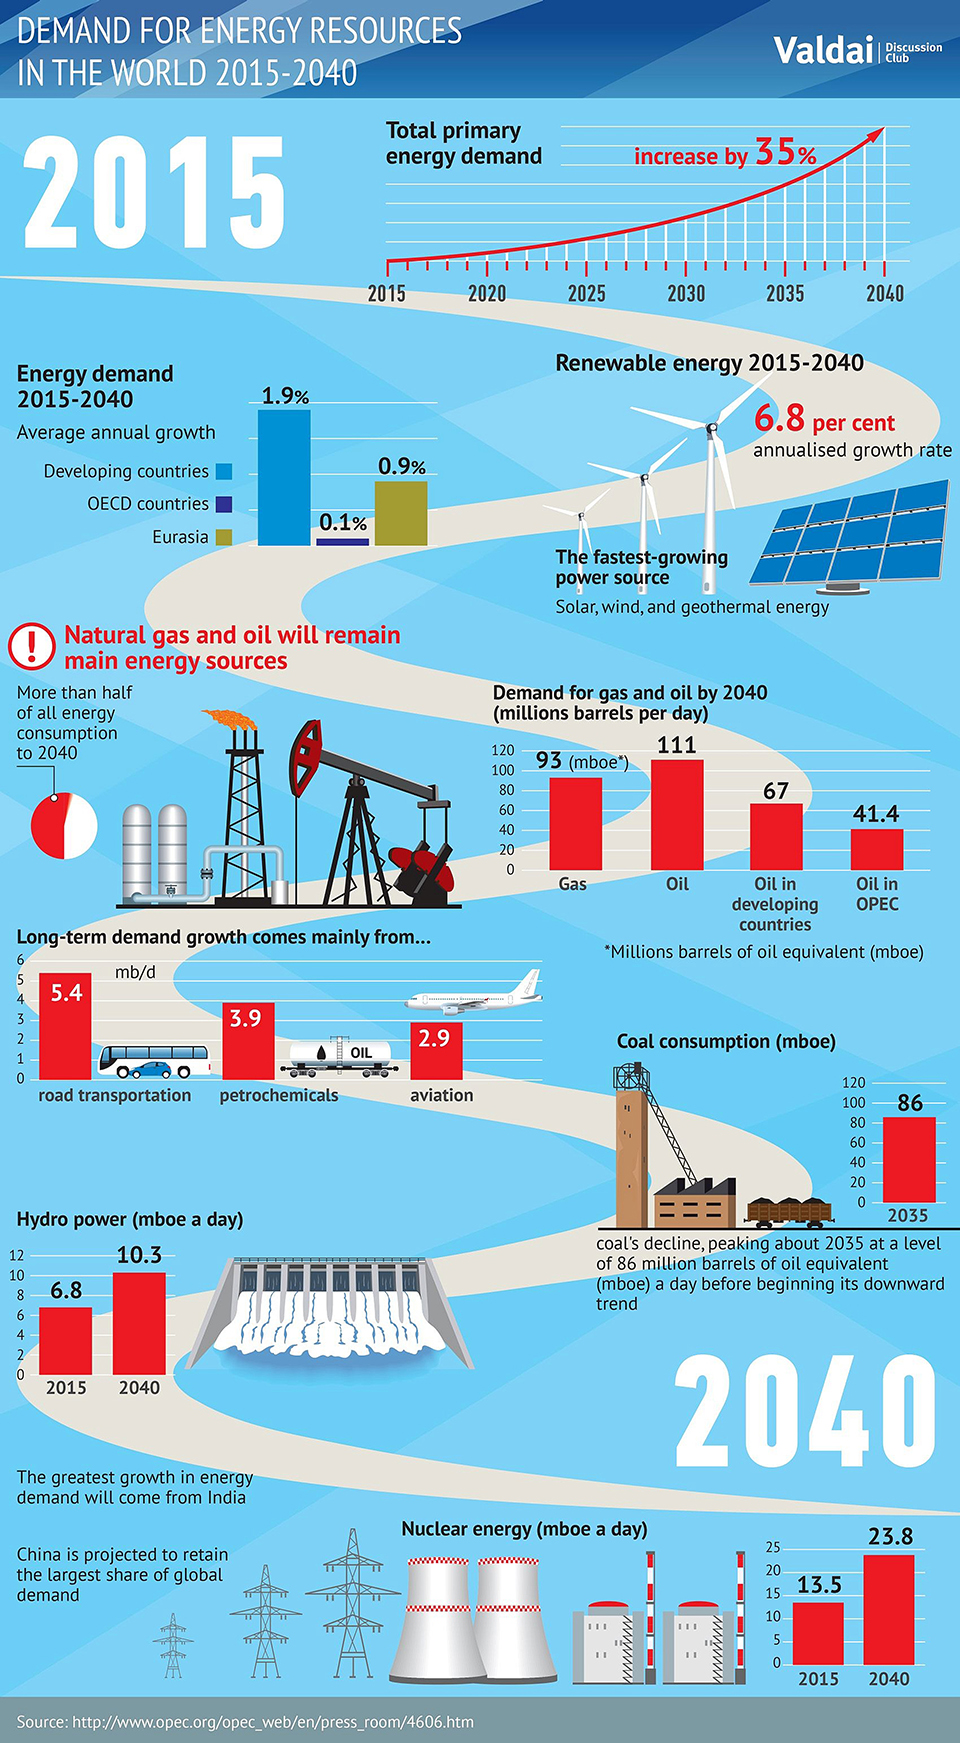 Infographics: Demand for Energy Resources in World 2015-2040